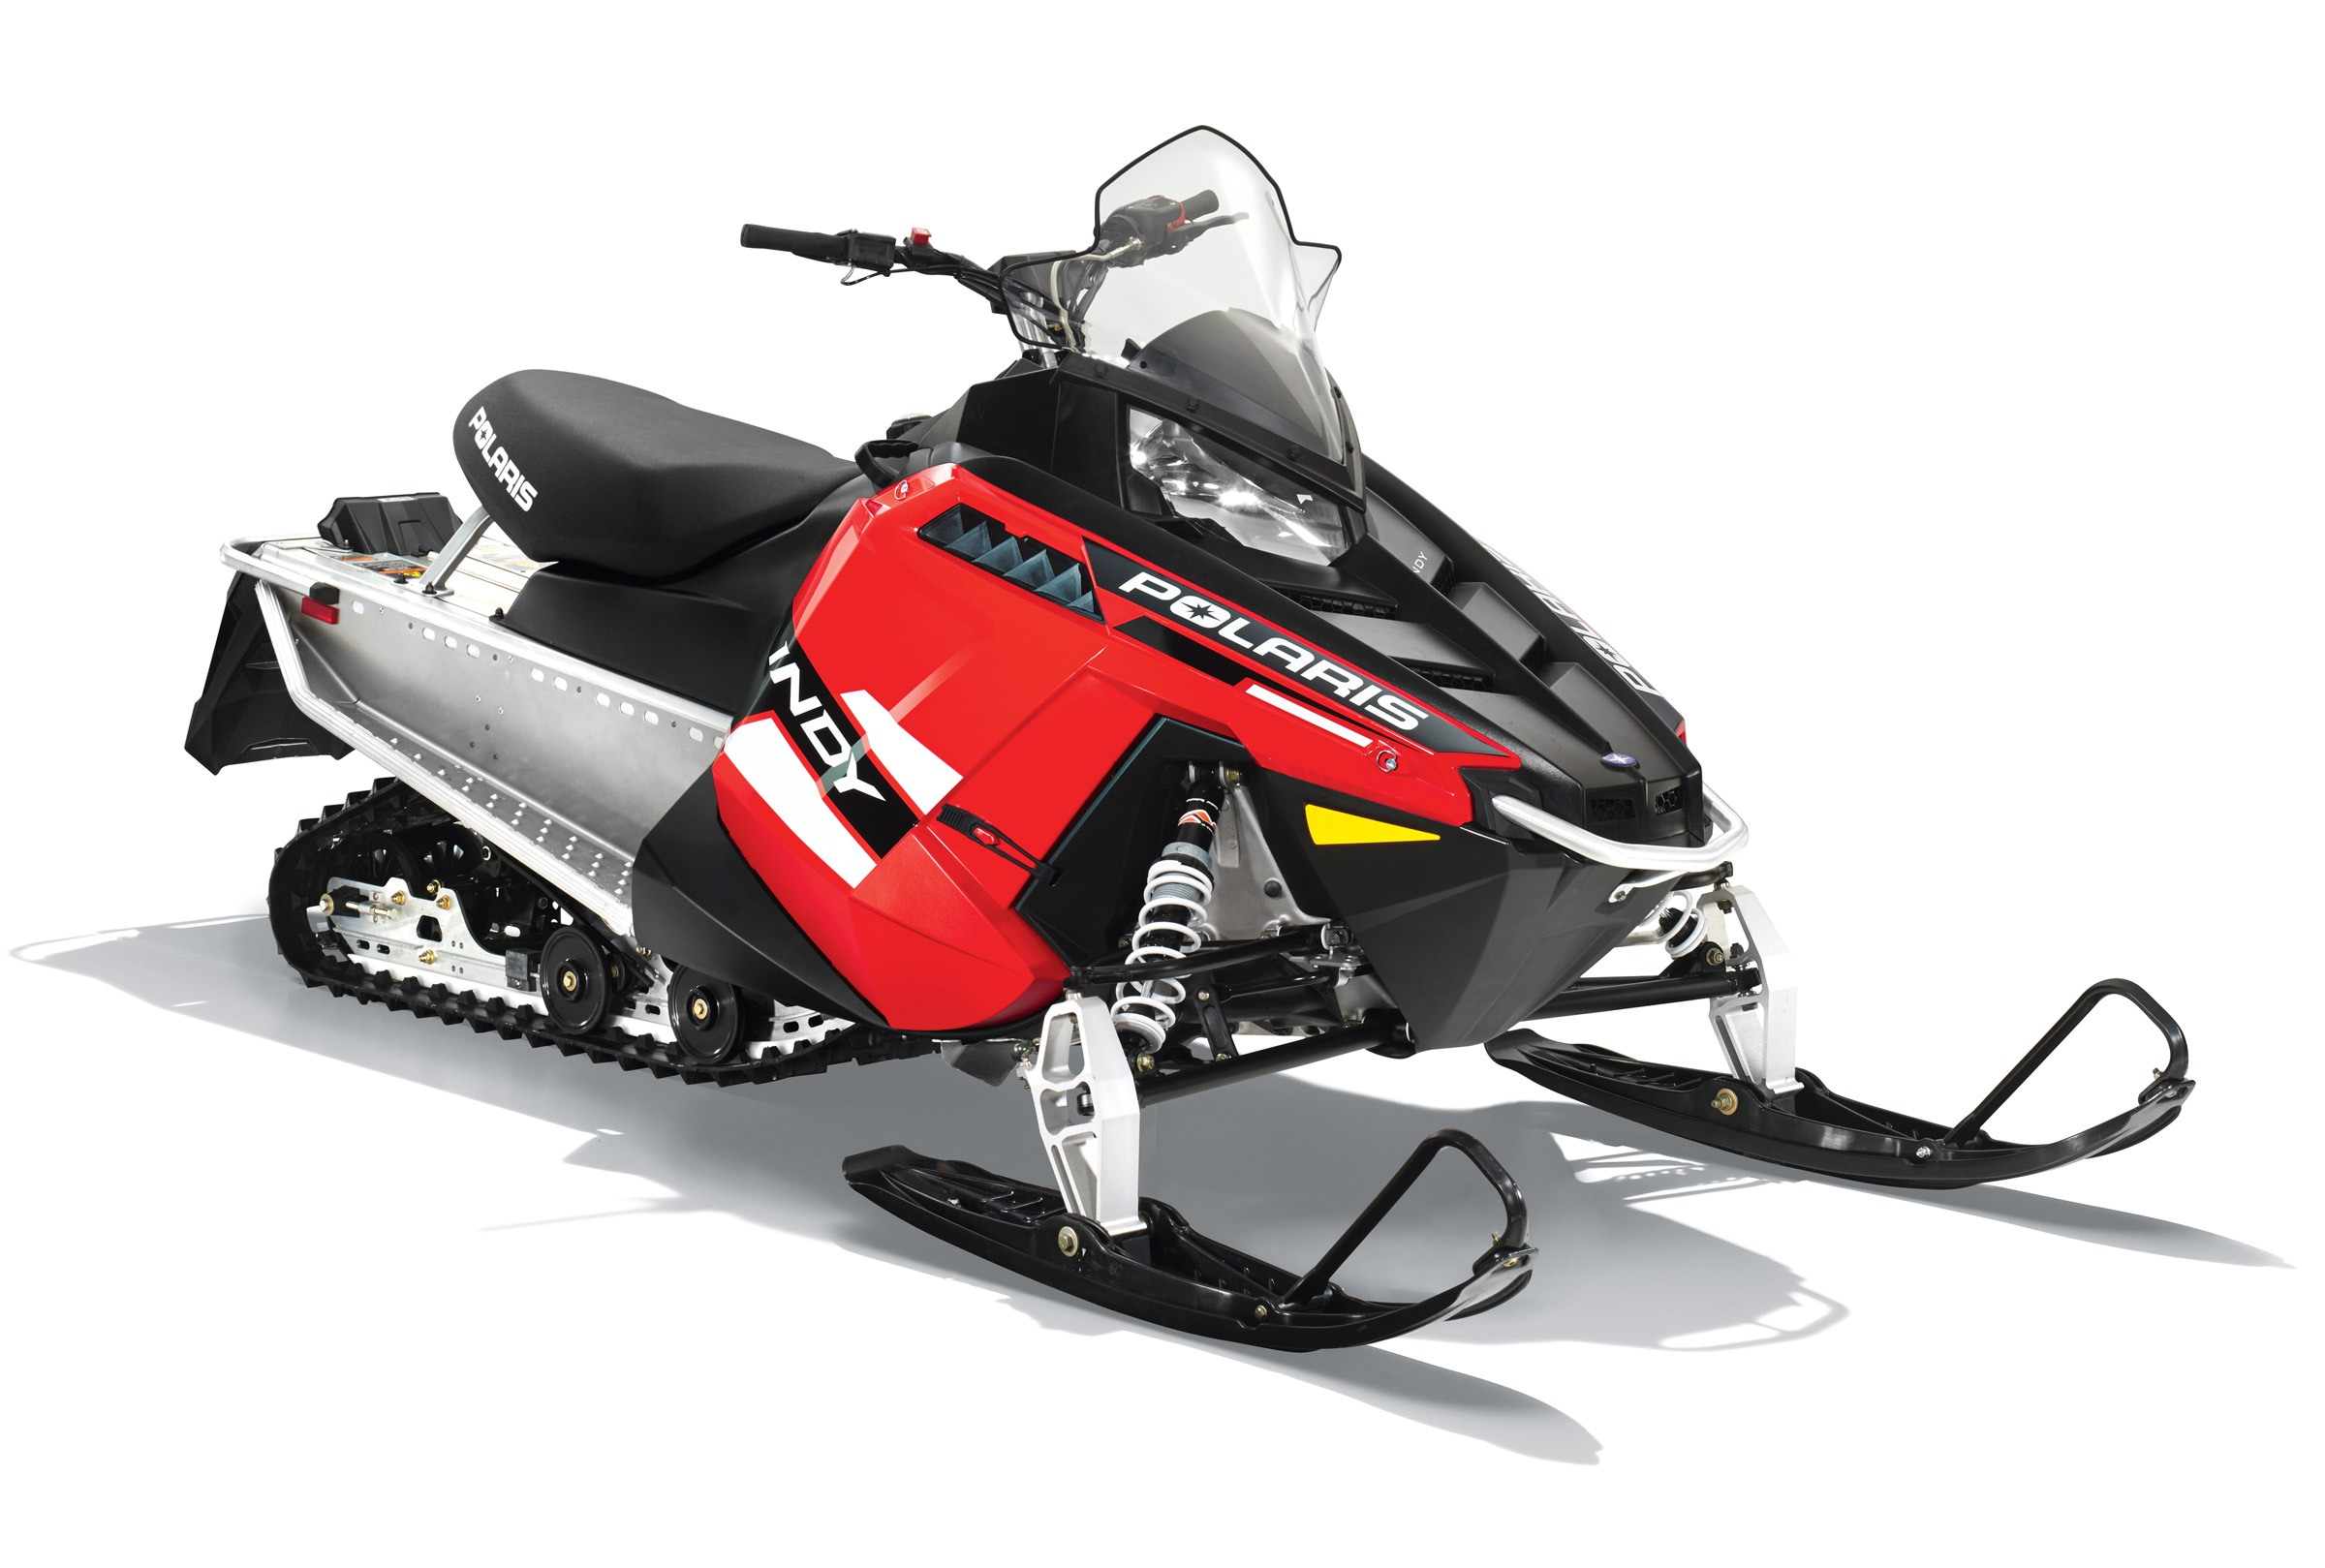 2016 Polaris 600 INDY in Lake Mills, Iowa